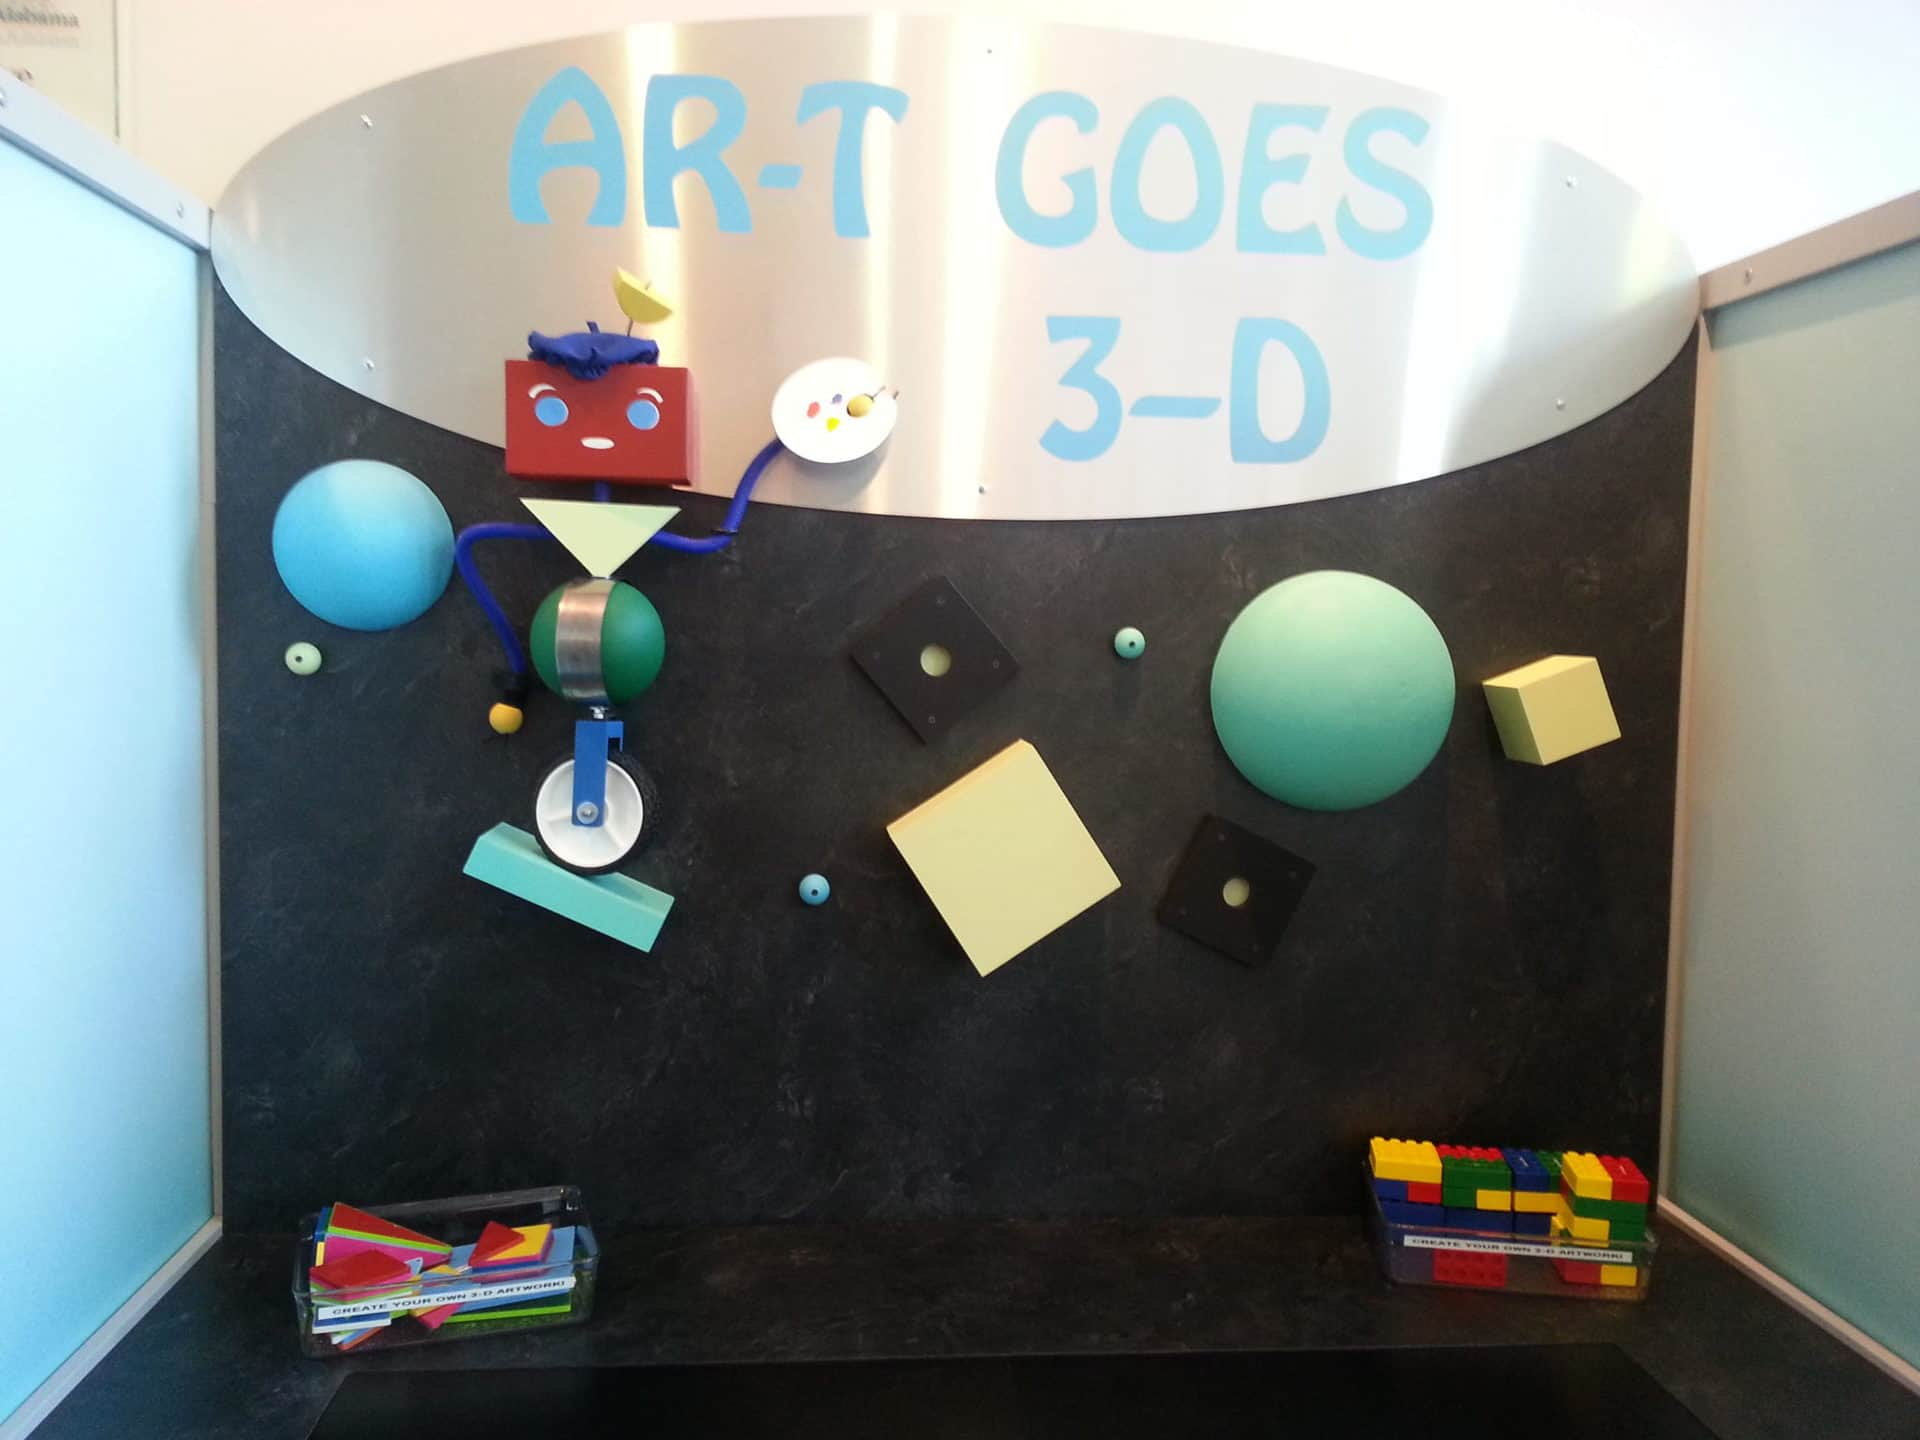 Huntsville Museum of Art - Art goes 3D